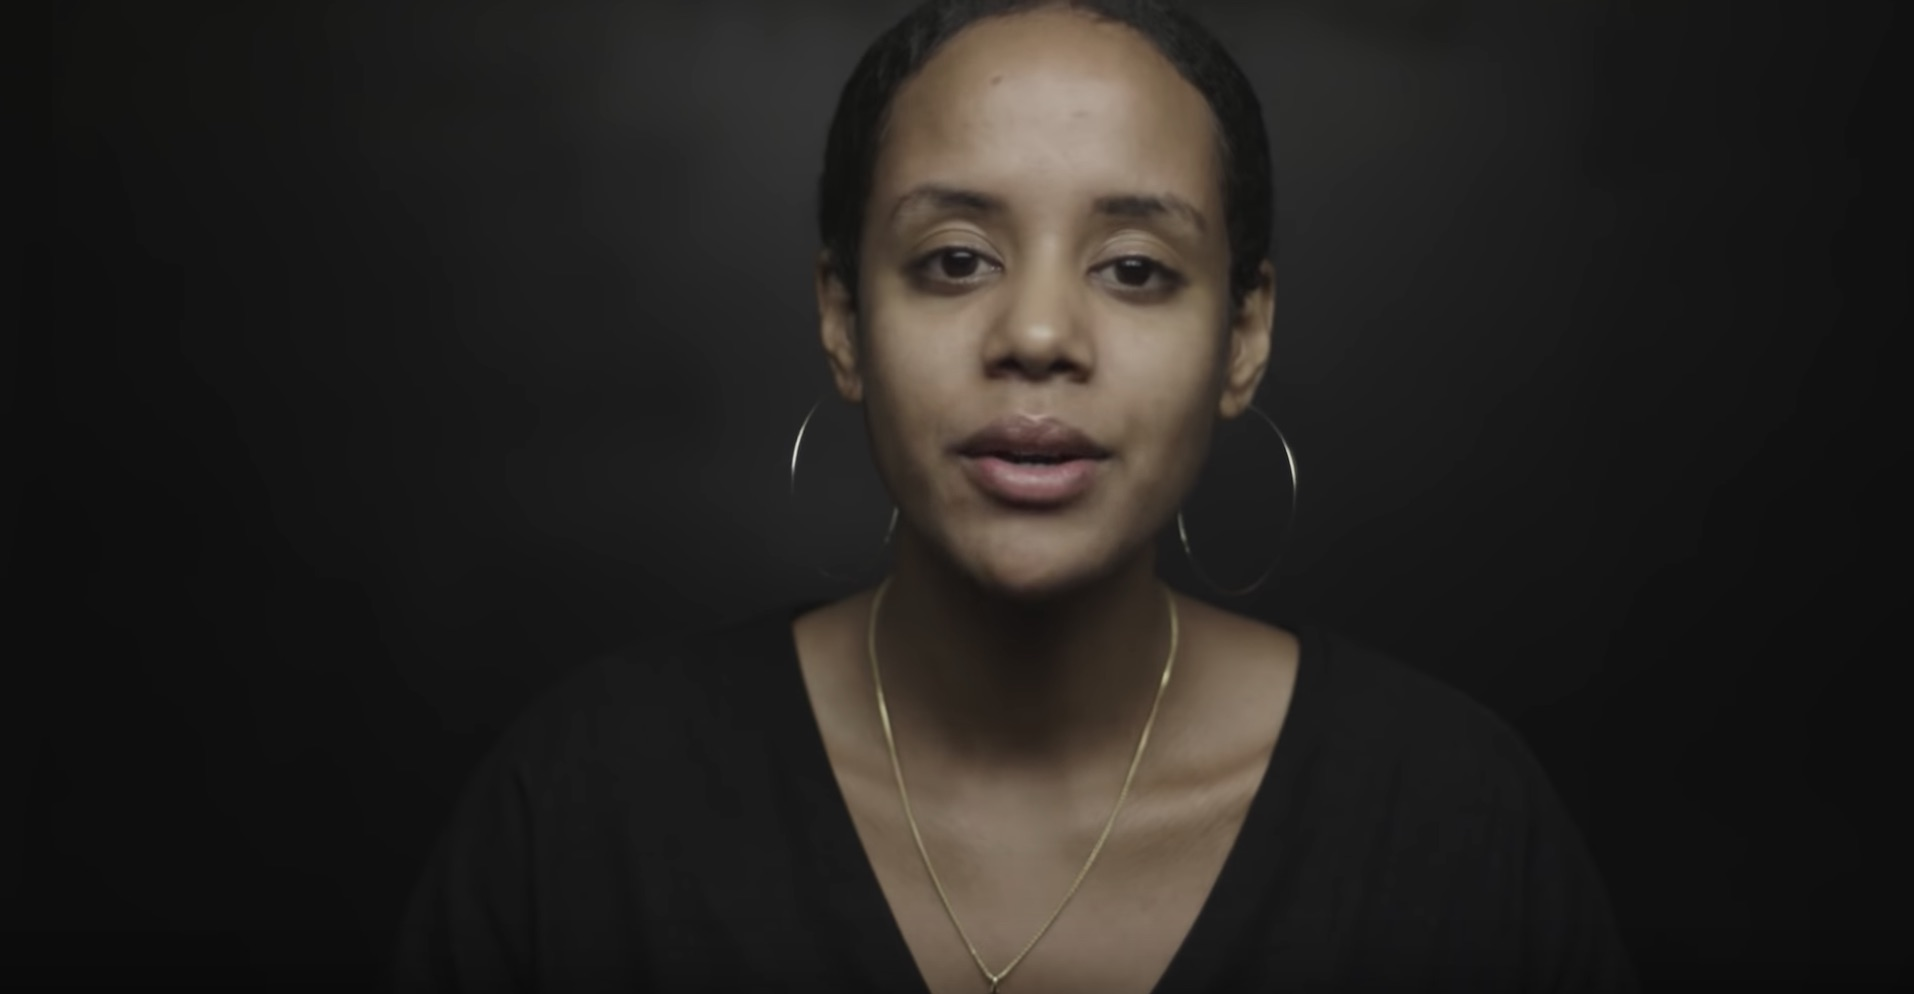 Time's Up released a powerful video calling on Brett Kavanaugh to withdraw his nomination